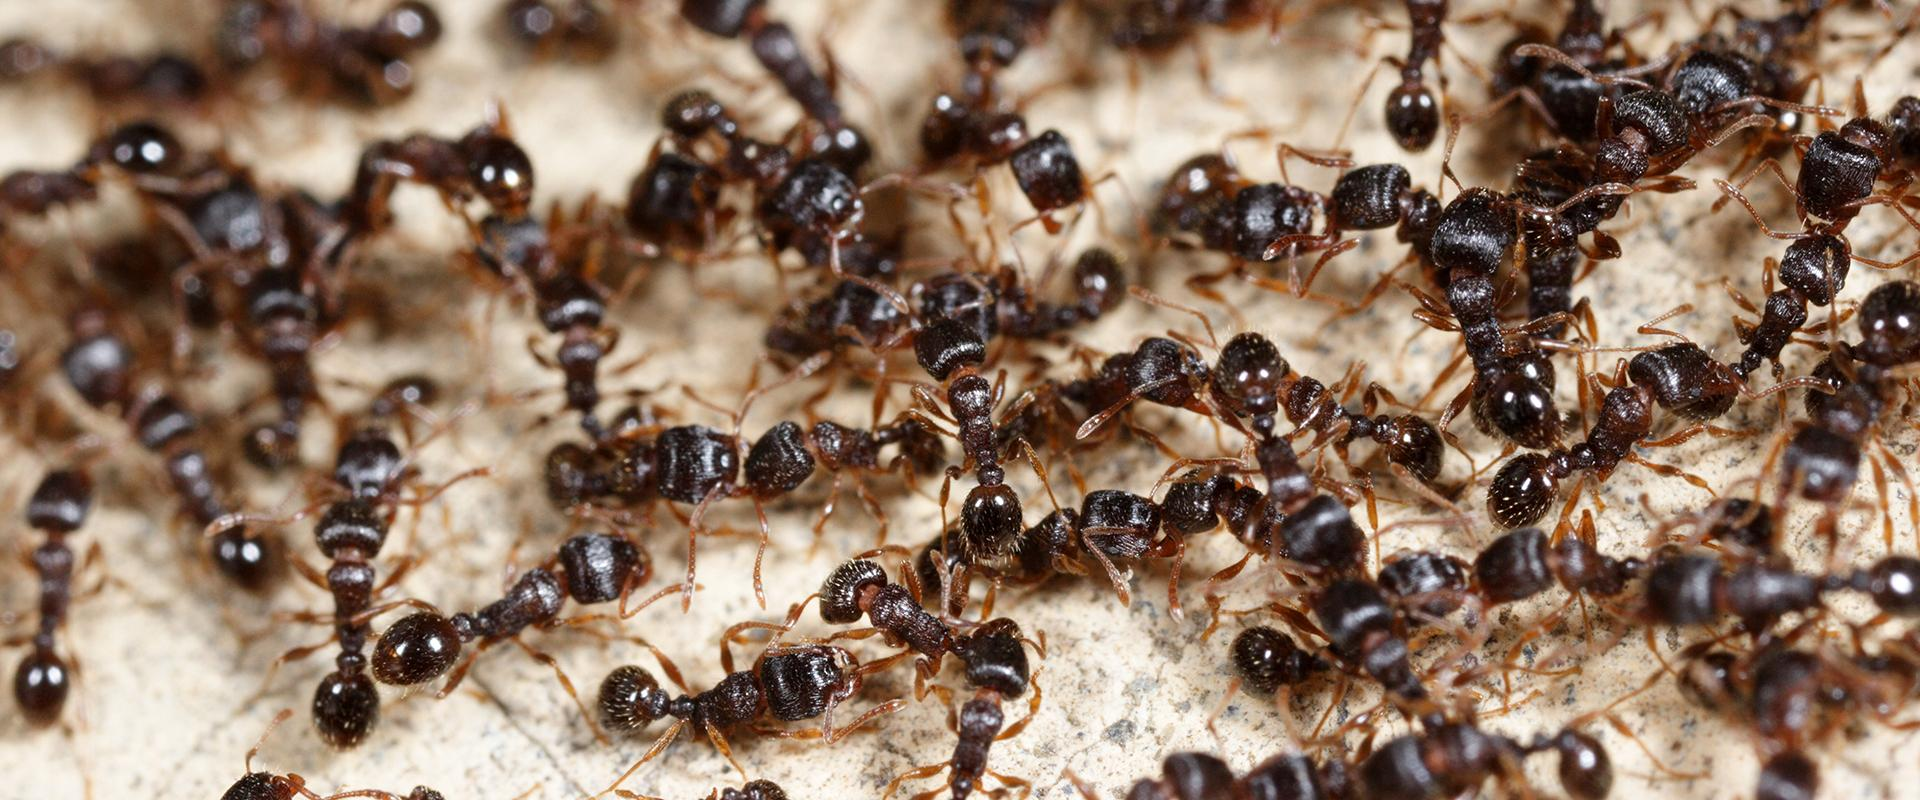 close up of ants